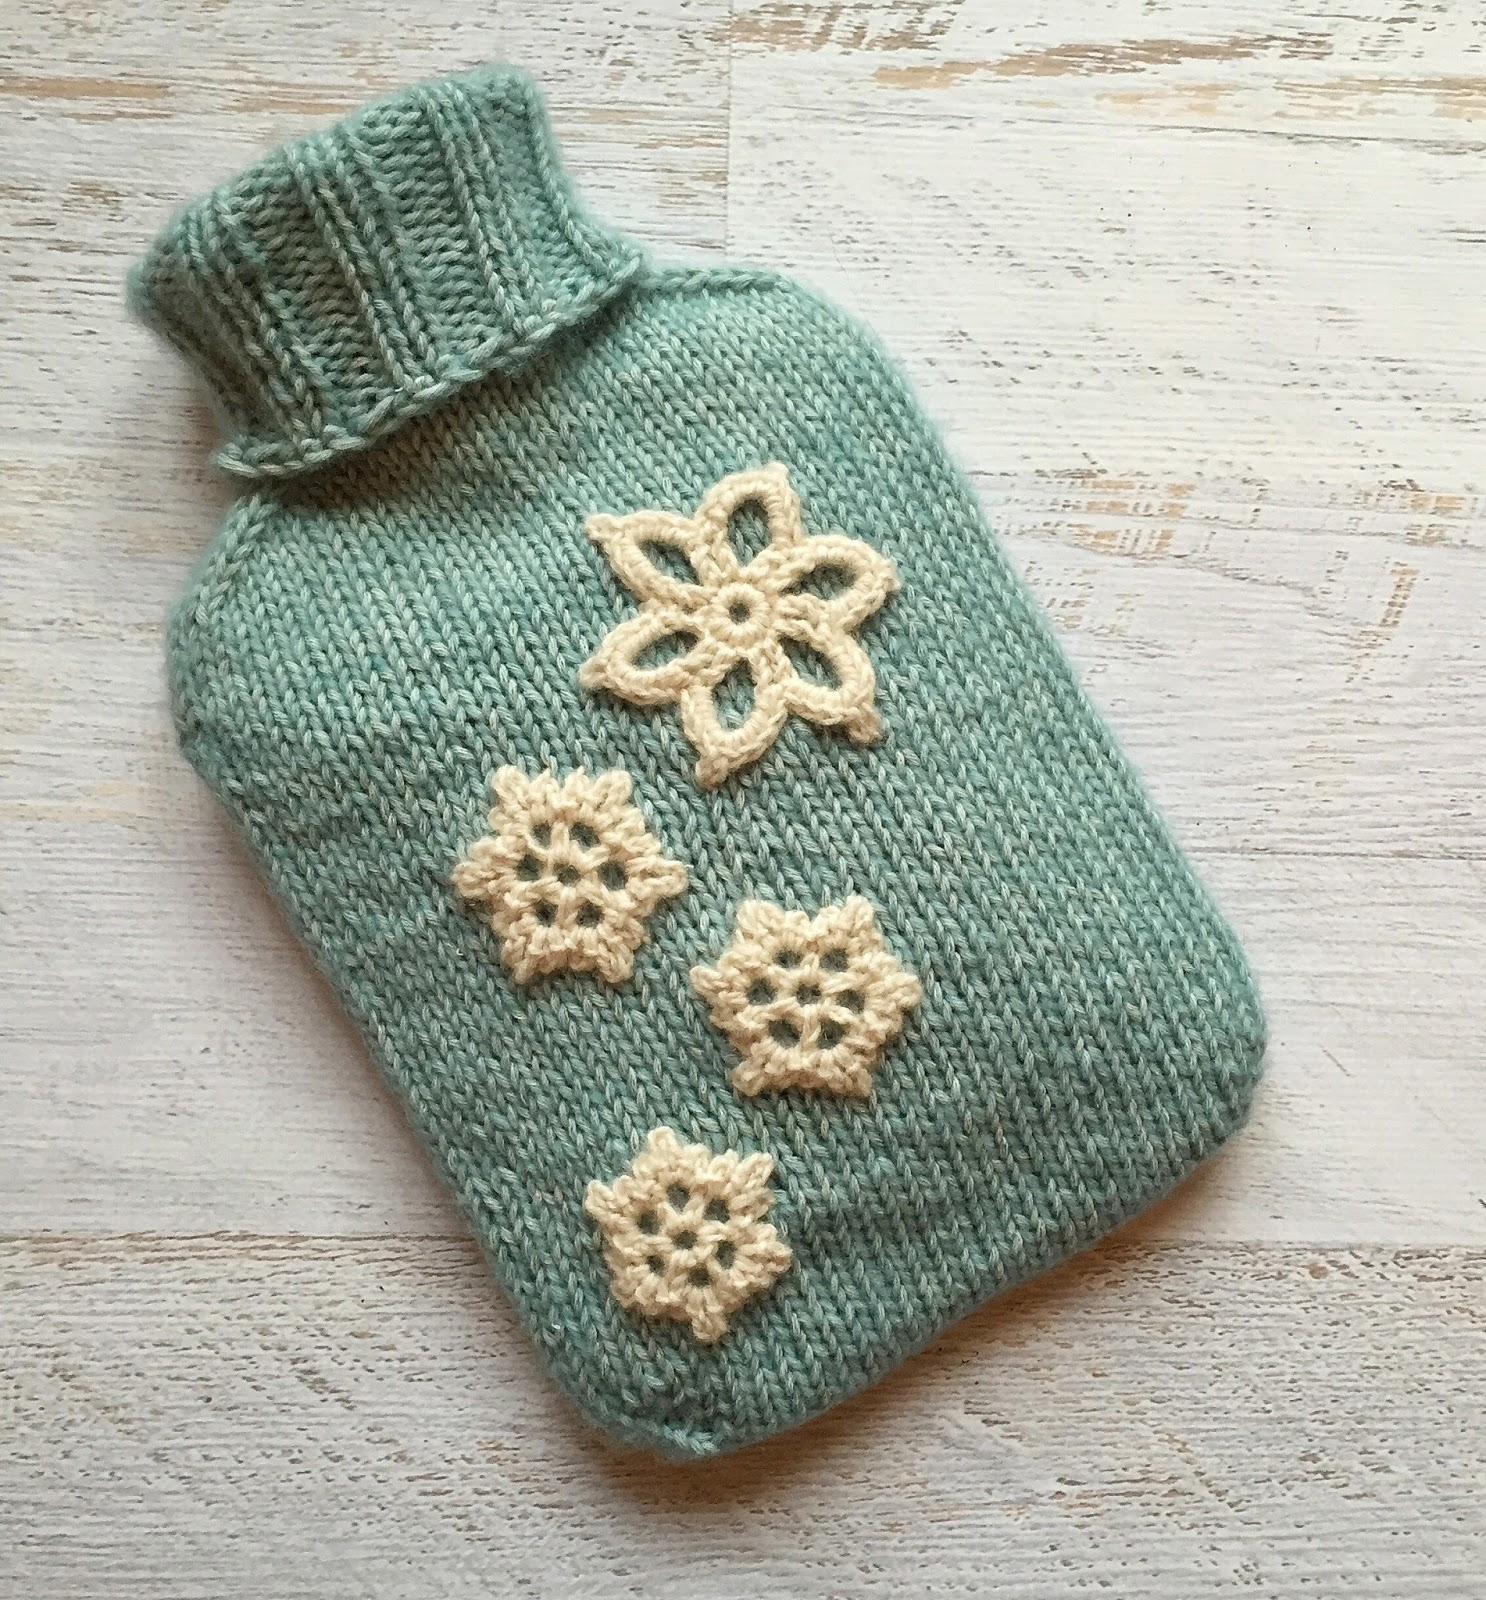 25 Knitting Pattern Hot Water Bottle Cover ⋆ Knitting Bee